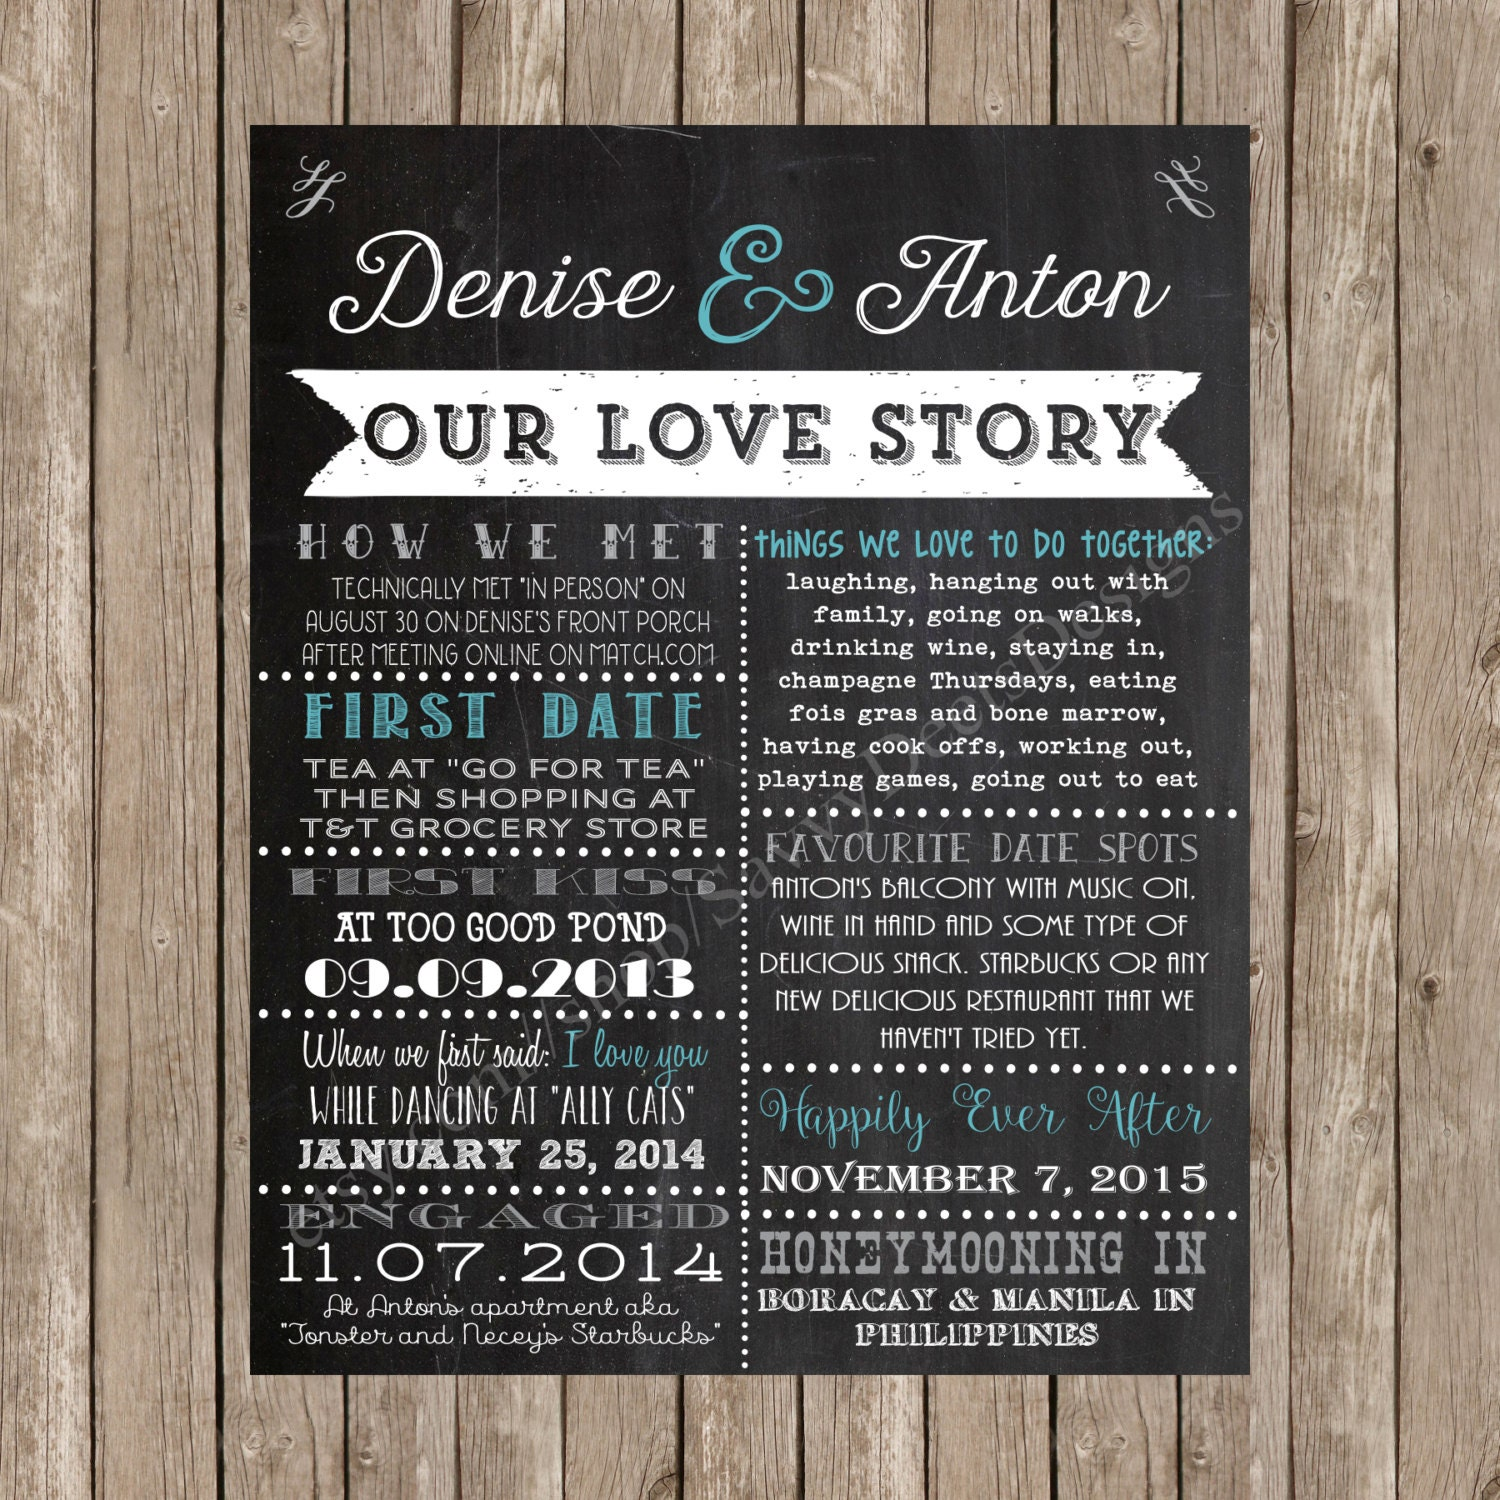 Our Love Story Wedding Idea: Wedding Love Story Sign Our Love Story Chalkboard Wedding